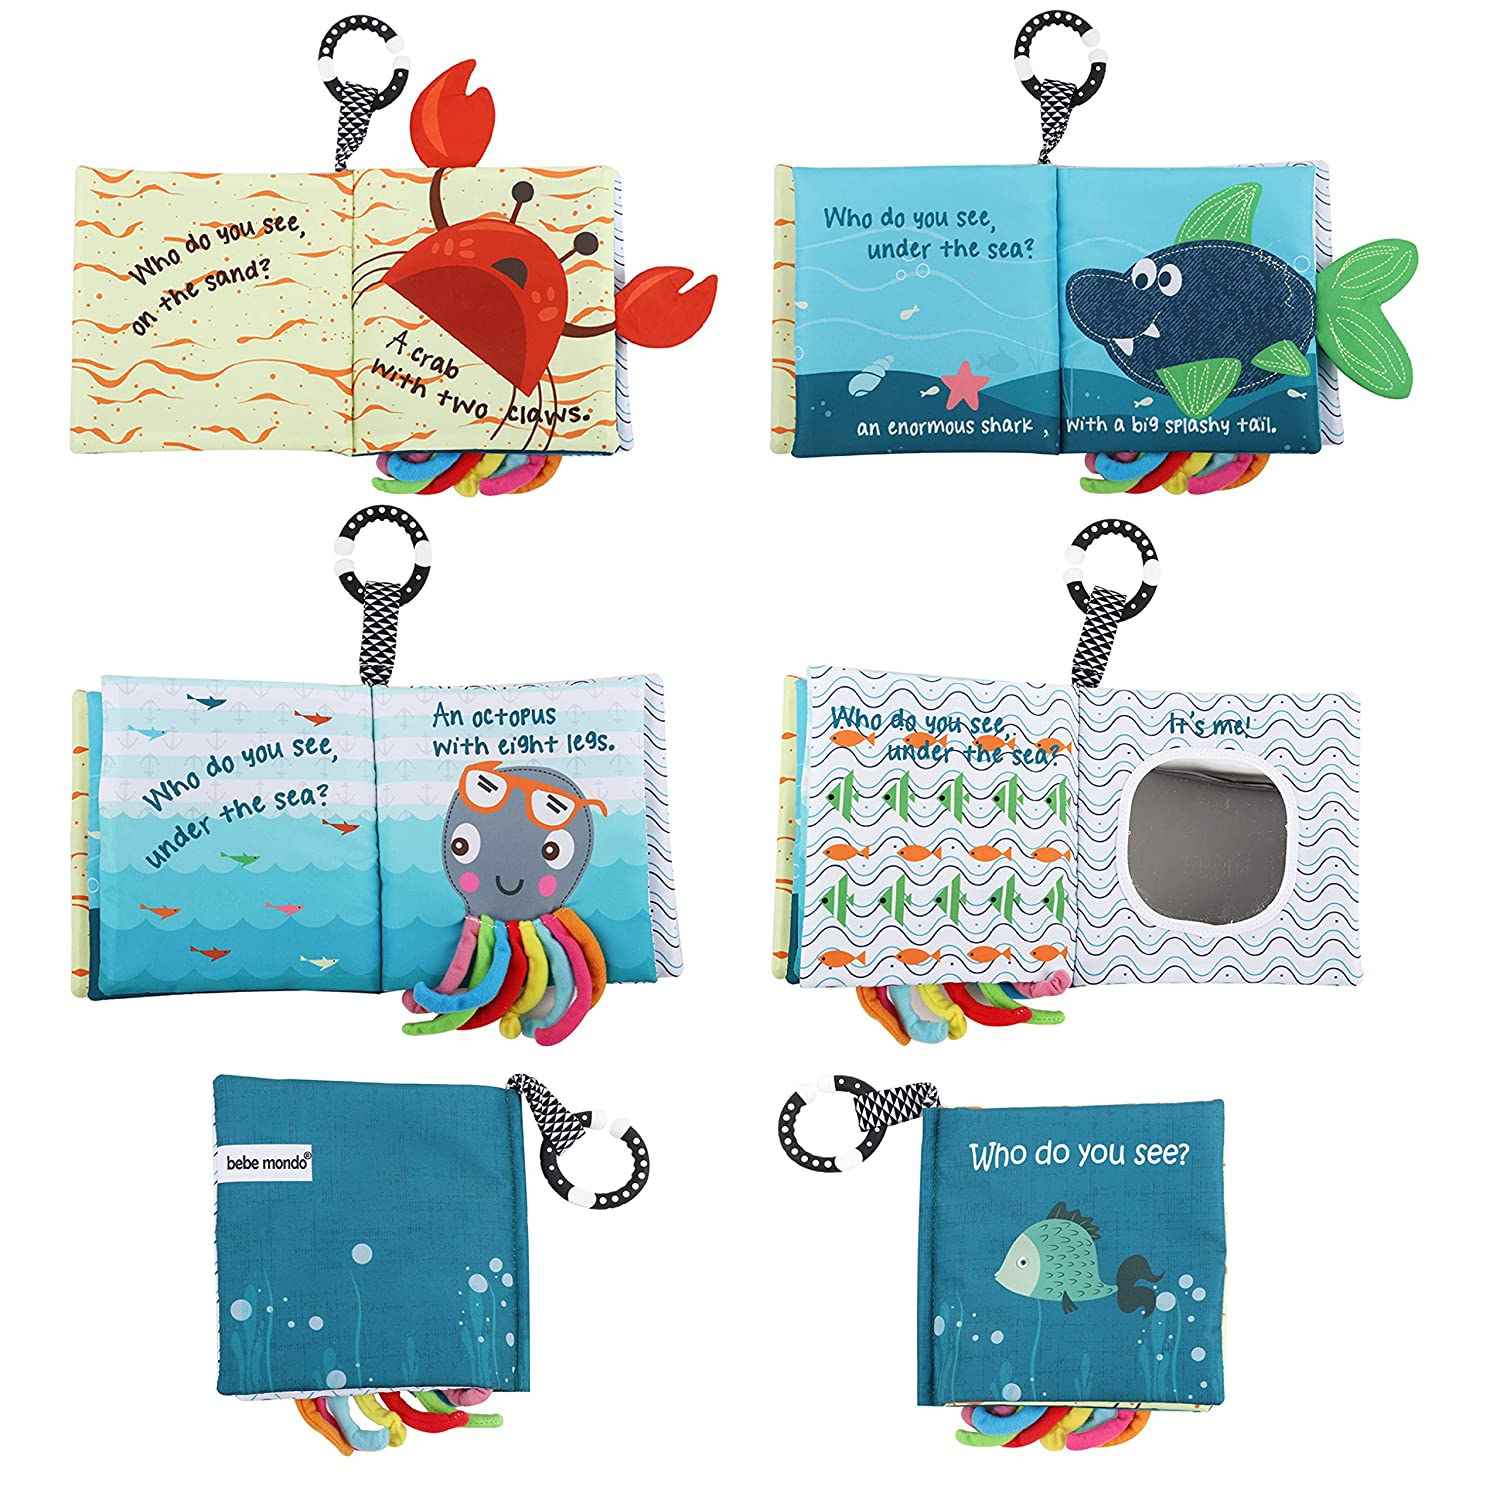 Fishy Tails Soft Activity Infants,Toddlers Sea Animal Non-Toxic Fabric Cloth Book,Tails book Kids with Teether,Teething book Crinkle Books and Toys for Early Education for Babies Octopus Shark Joli Vita